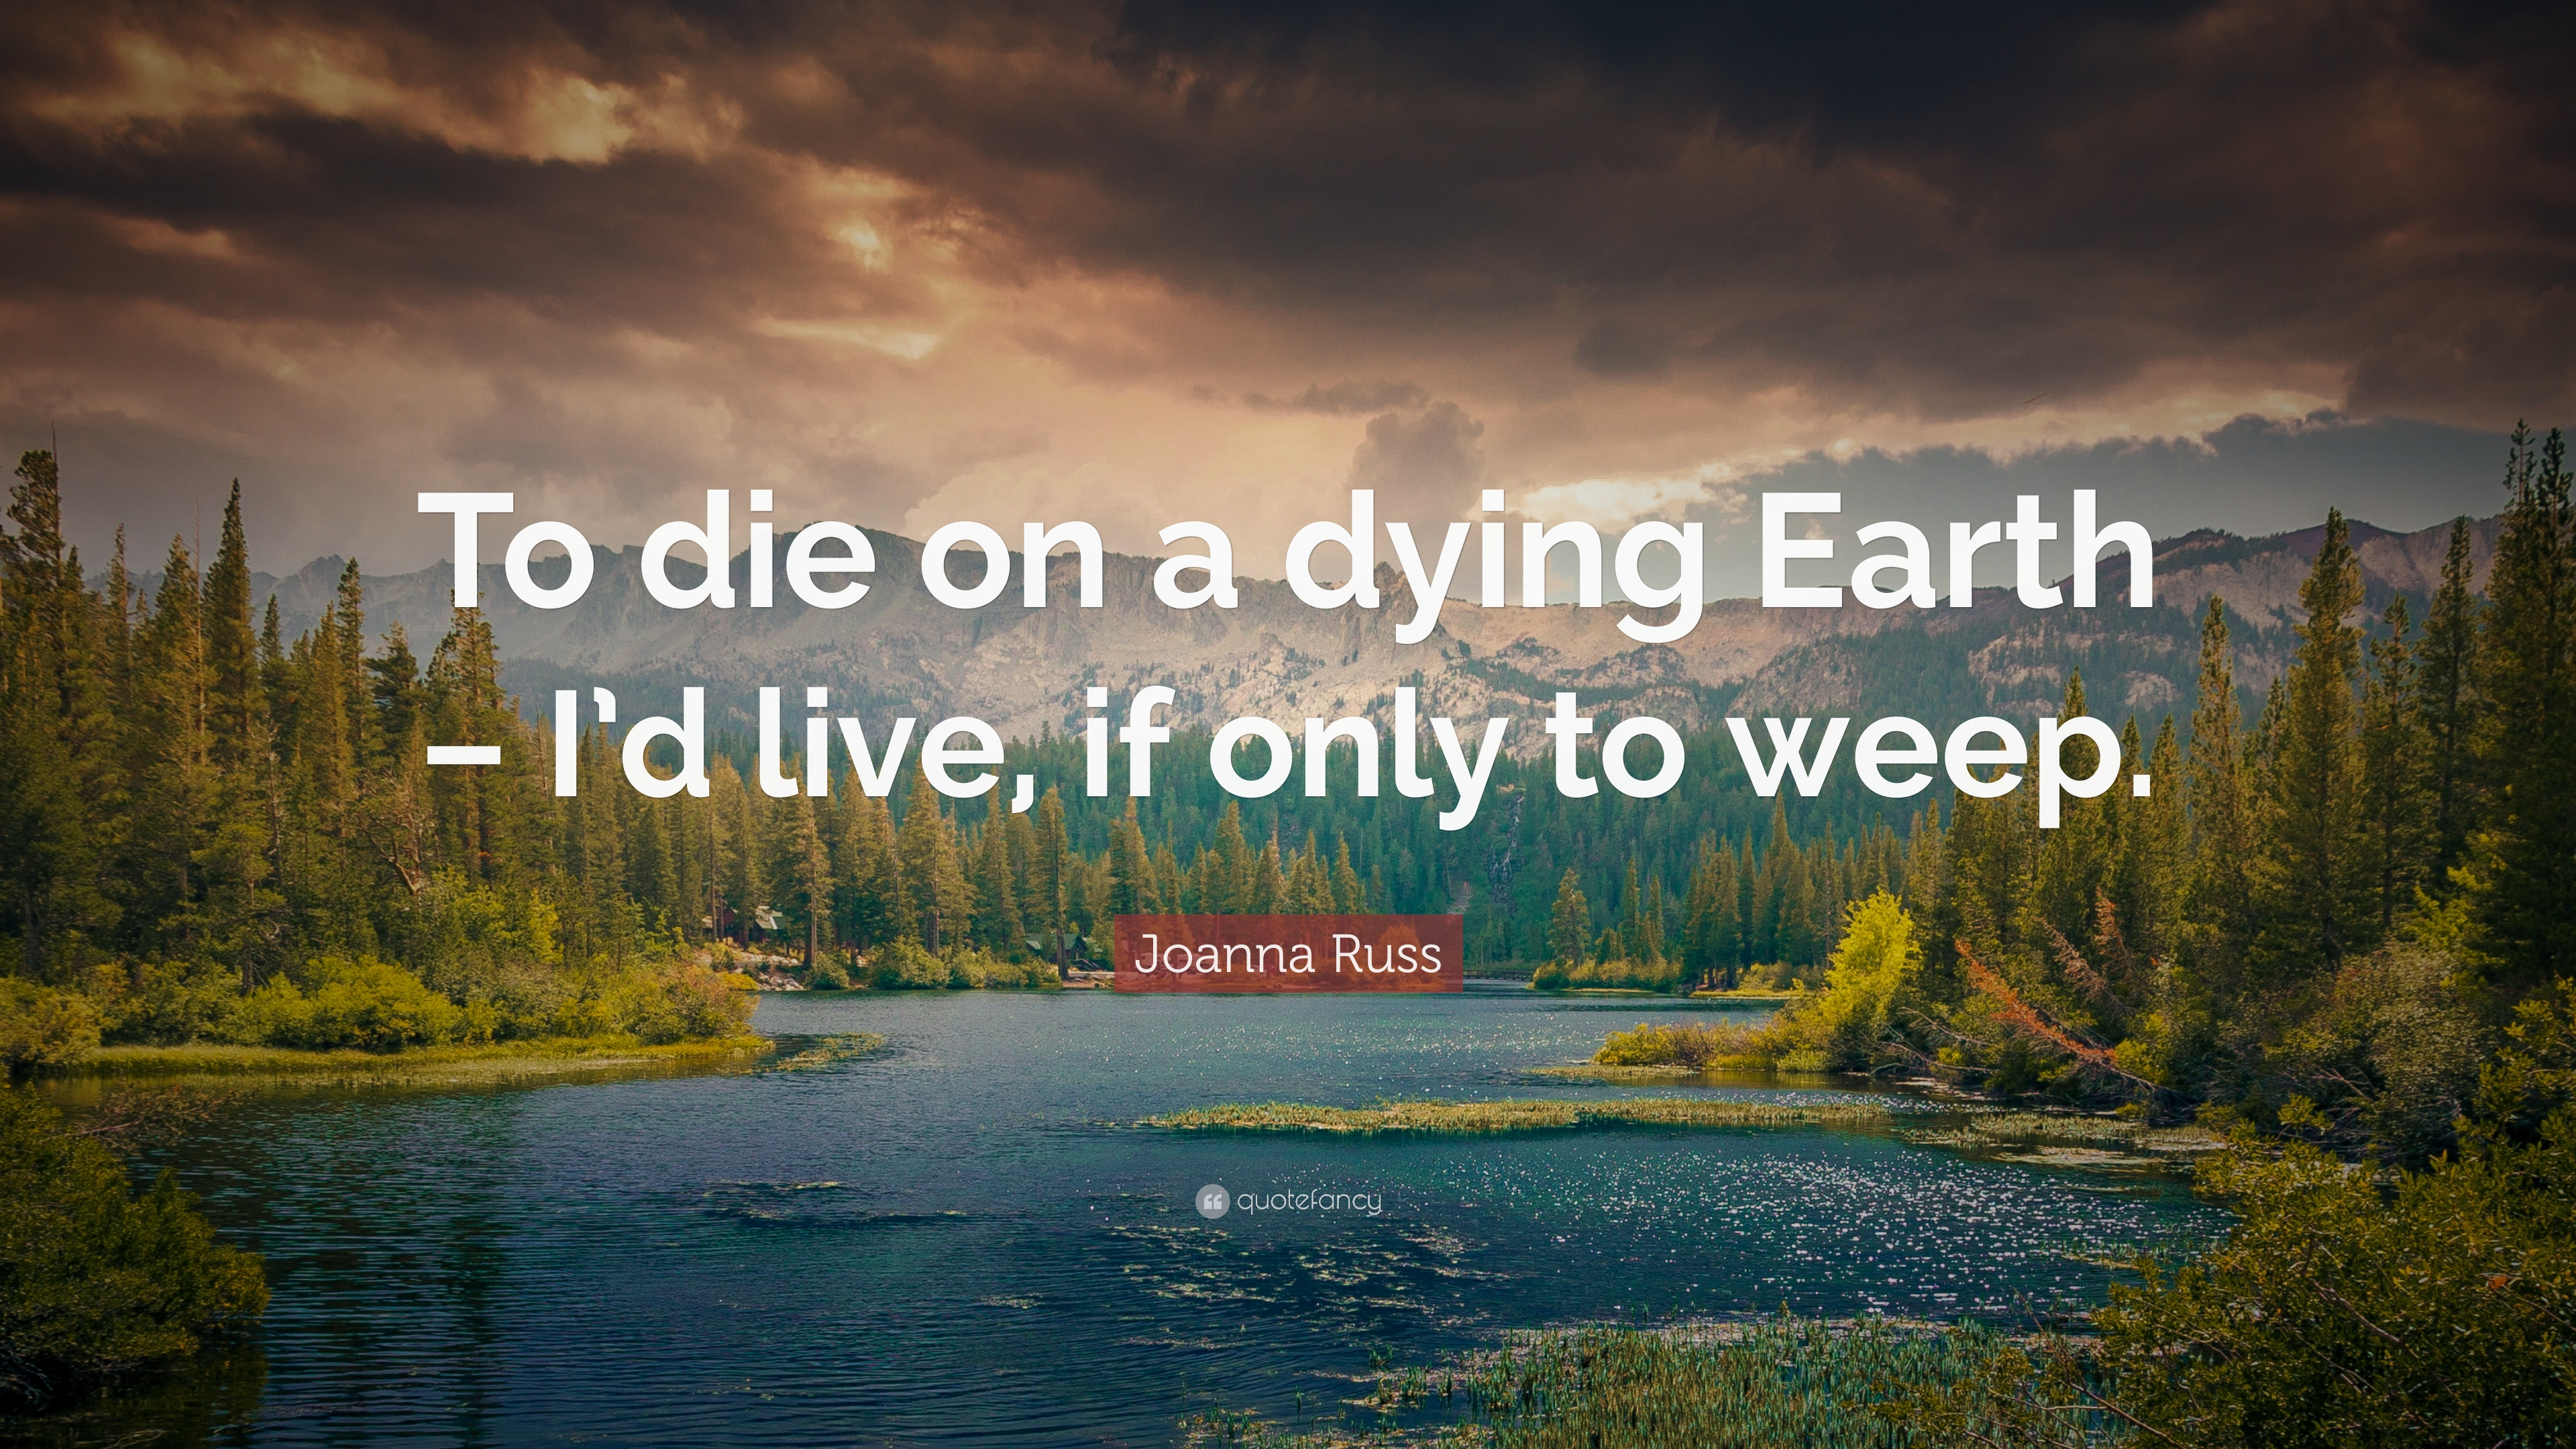 Joanna Russ Quote To Die On A Dying Earth Id Live If Only To